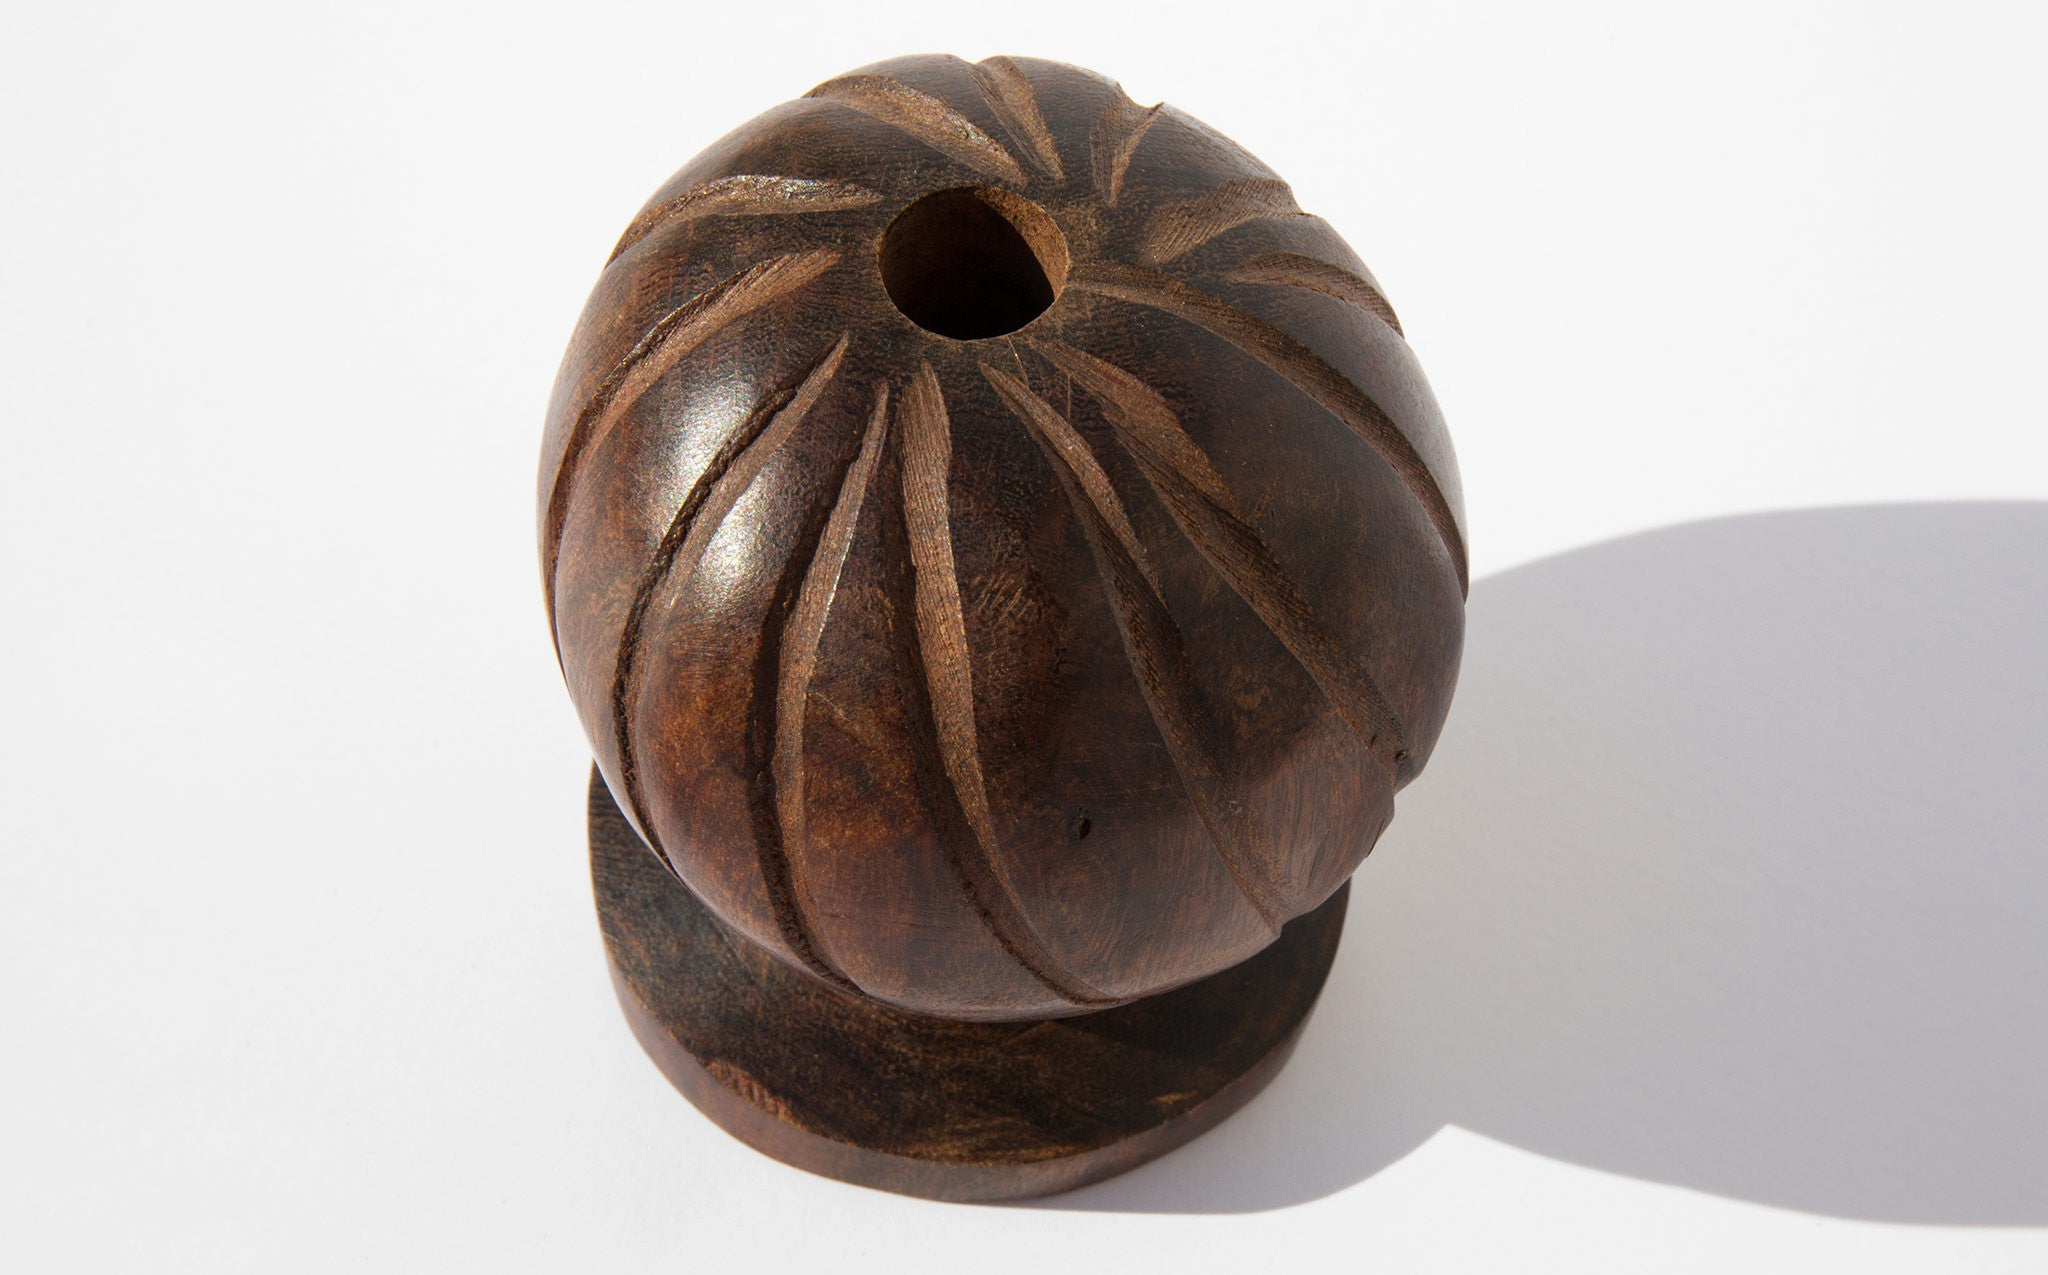 Hand Carved Ironwood Chiltepin Grinder